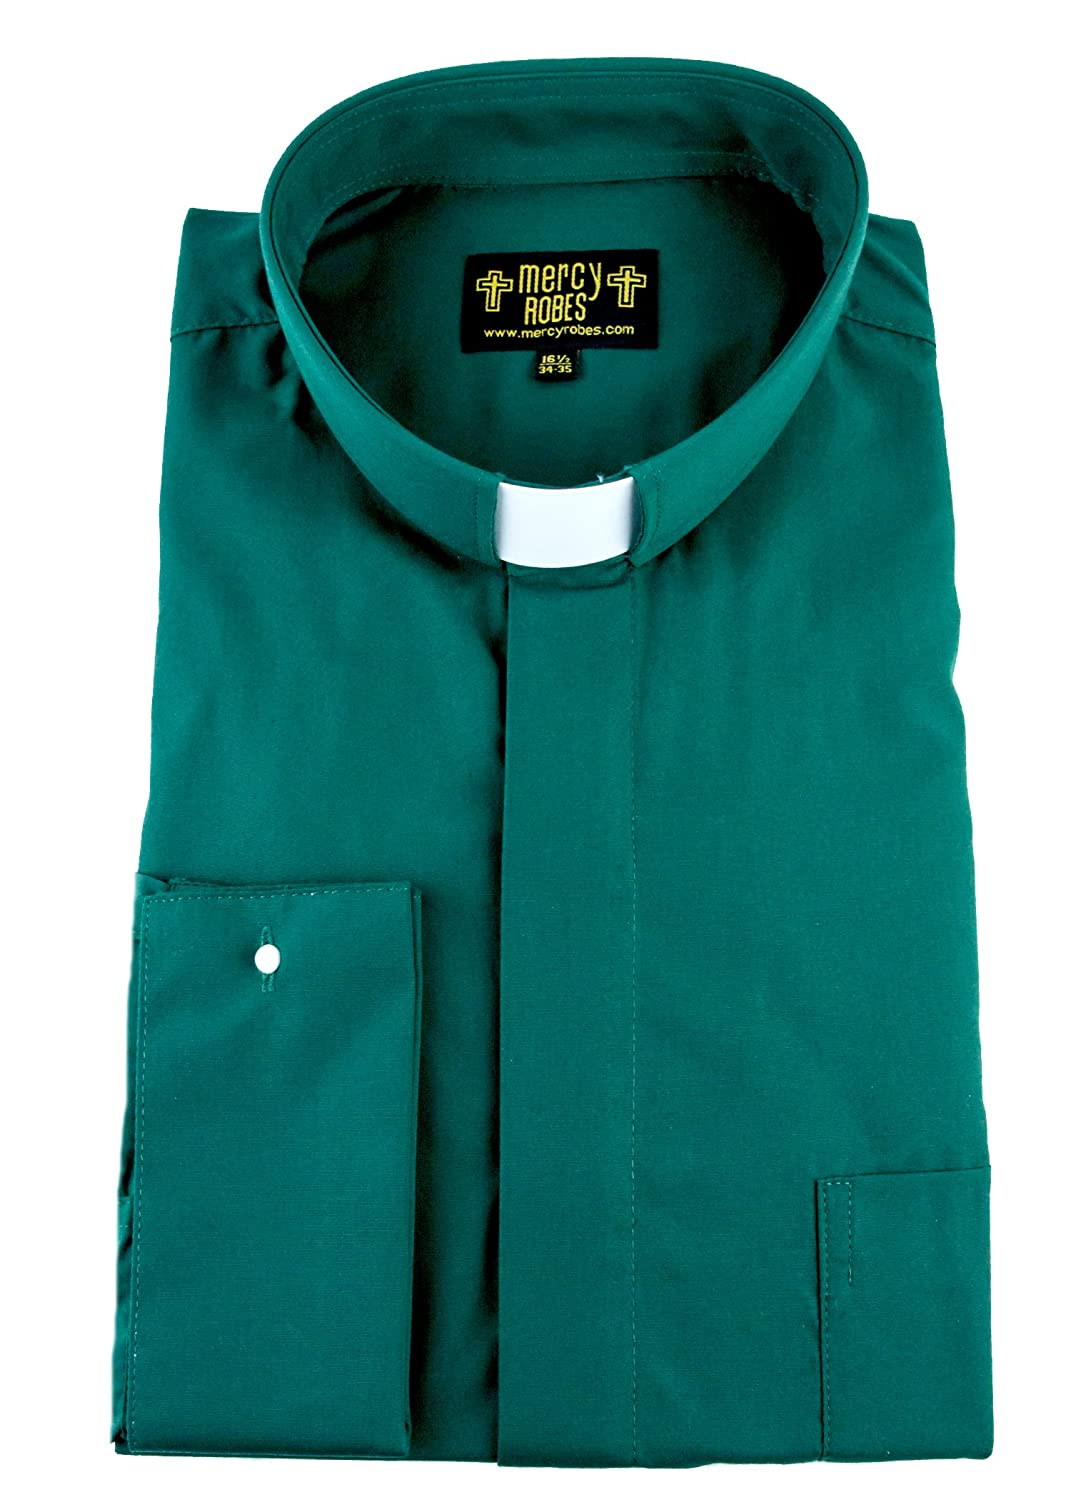 Mercy Robes Mens Green Long Sleeve French Cuff Tab Collar Clergy